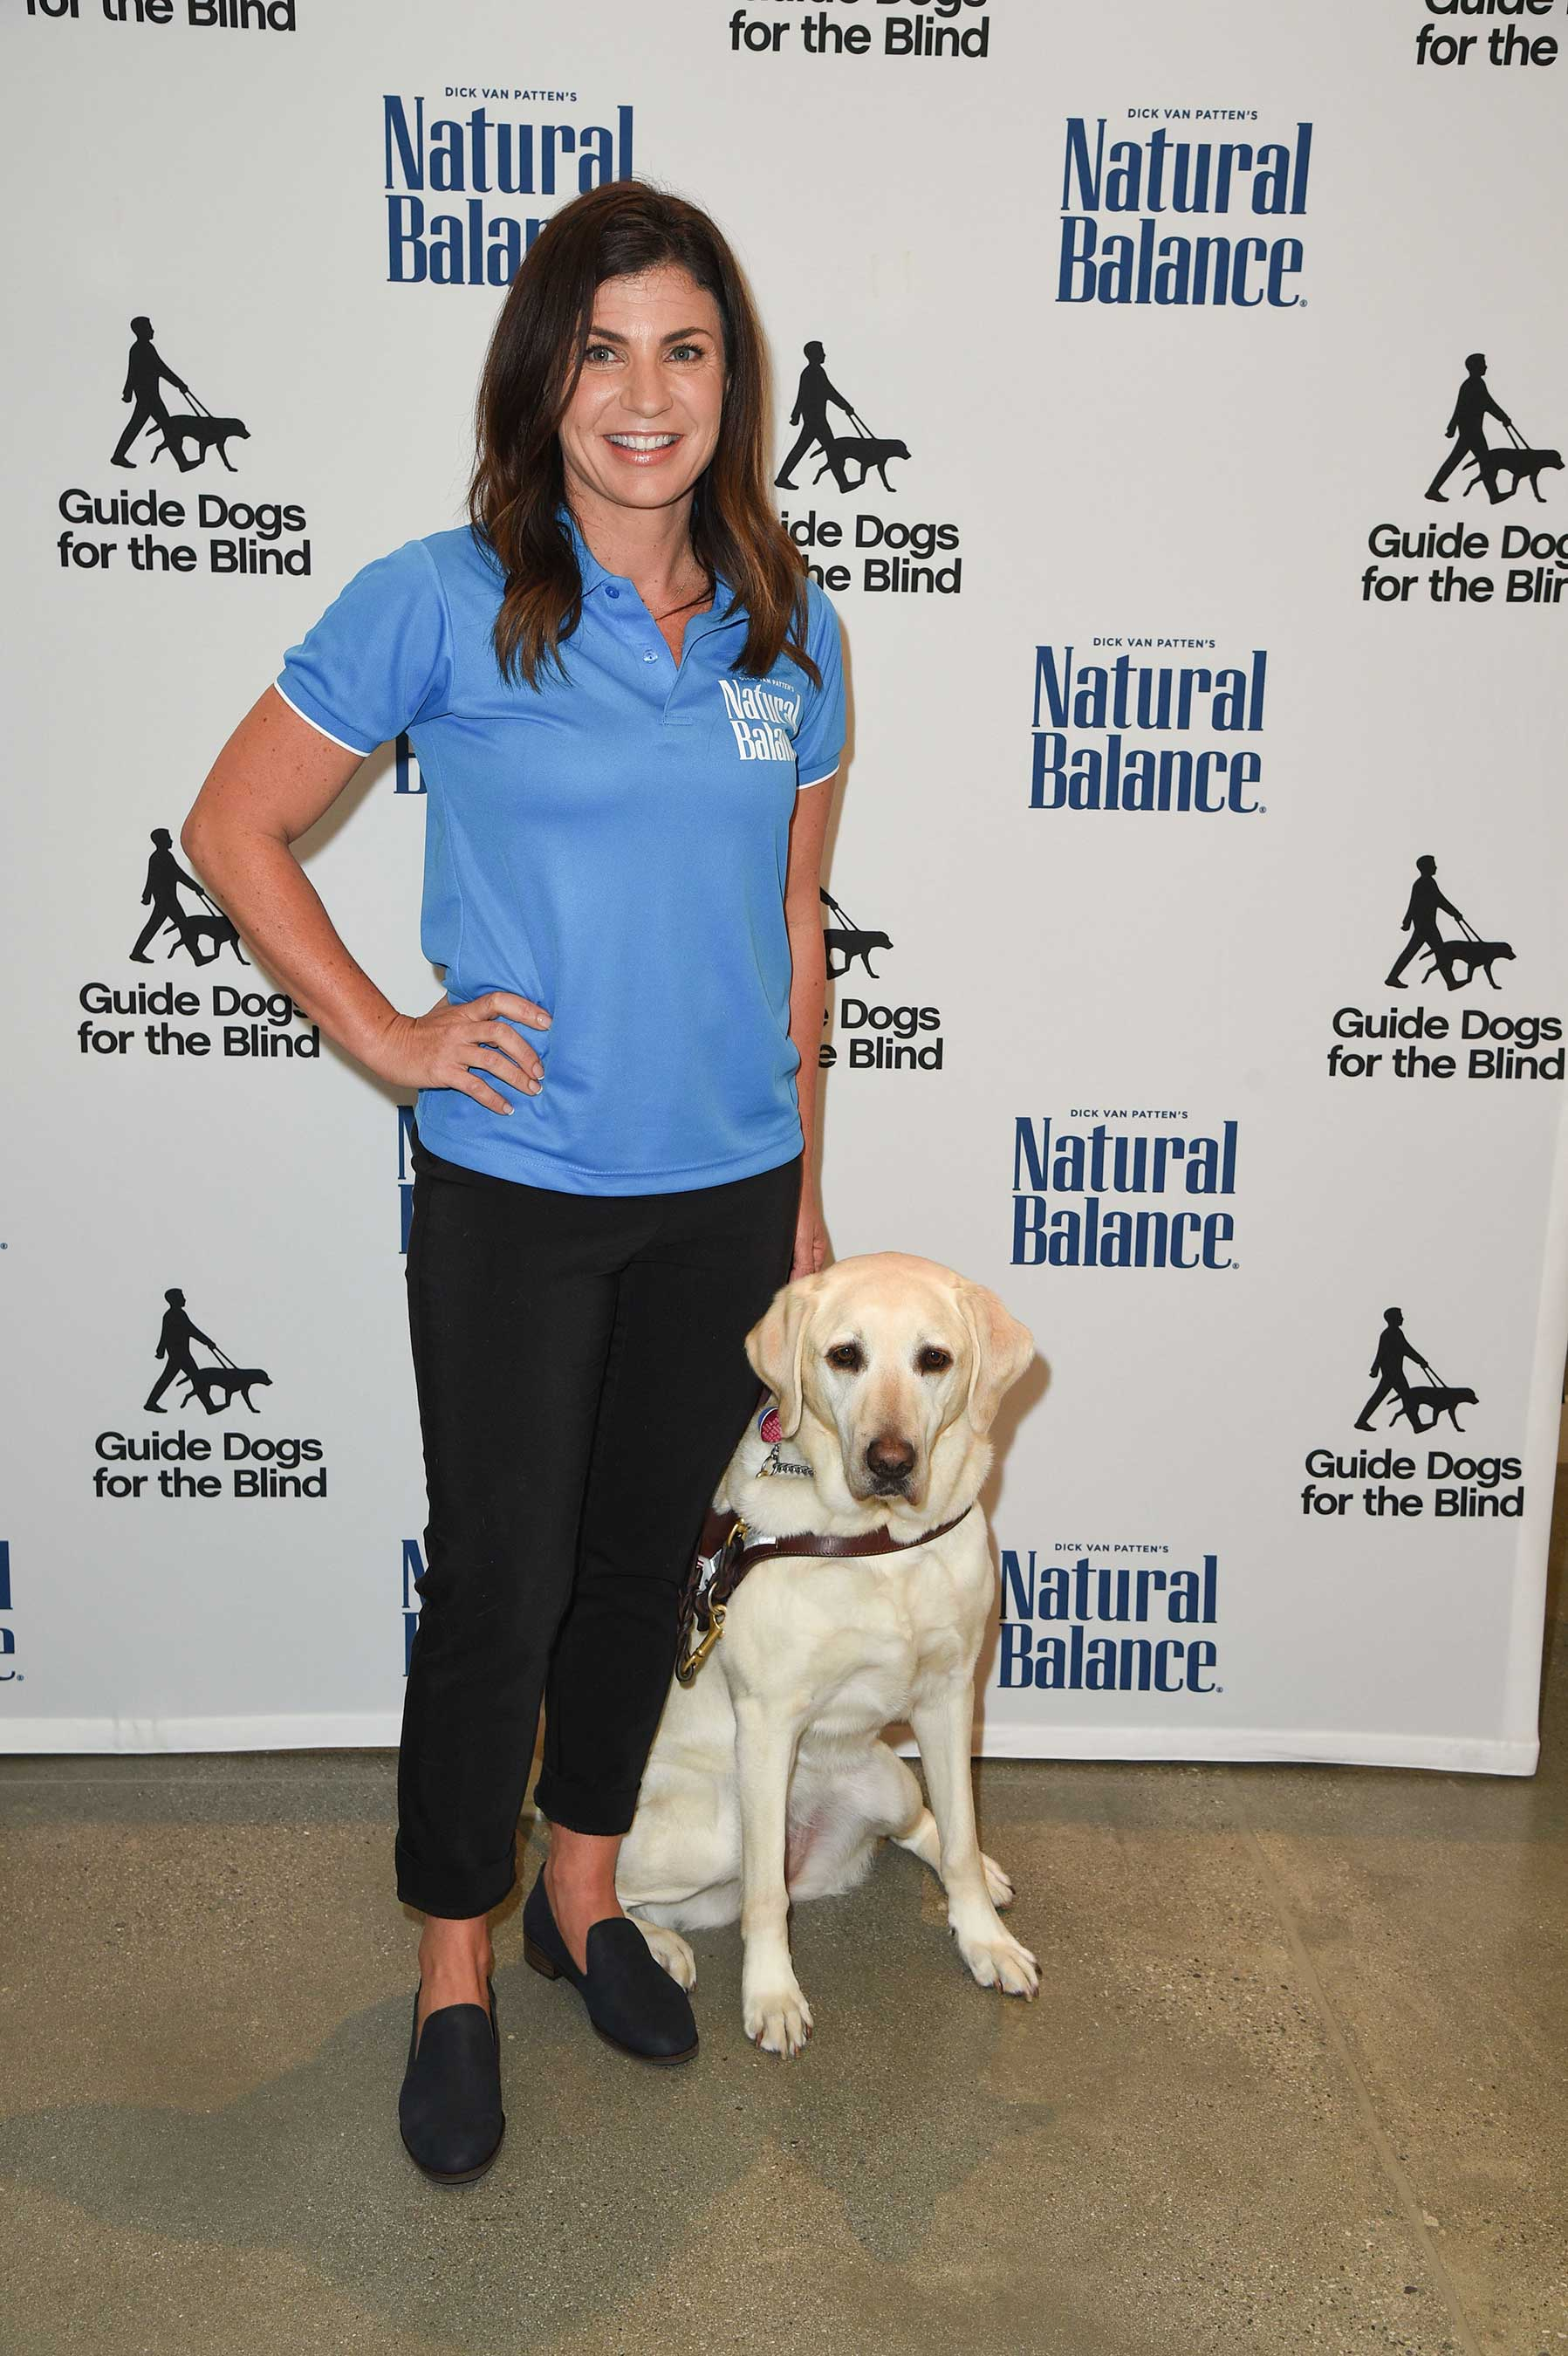 It's a pawty! Three-time Paralympic Medalist, Danelle Umstead and her guide dog, Aziza, celebrate the 10-year anniversary of National Guide Dog Month with Natural Balance premium pet food brand at the Kimpton Everly Hotel in Los Angeles